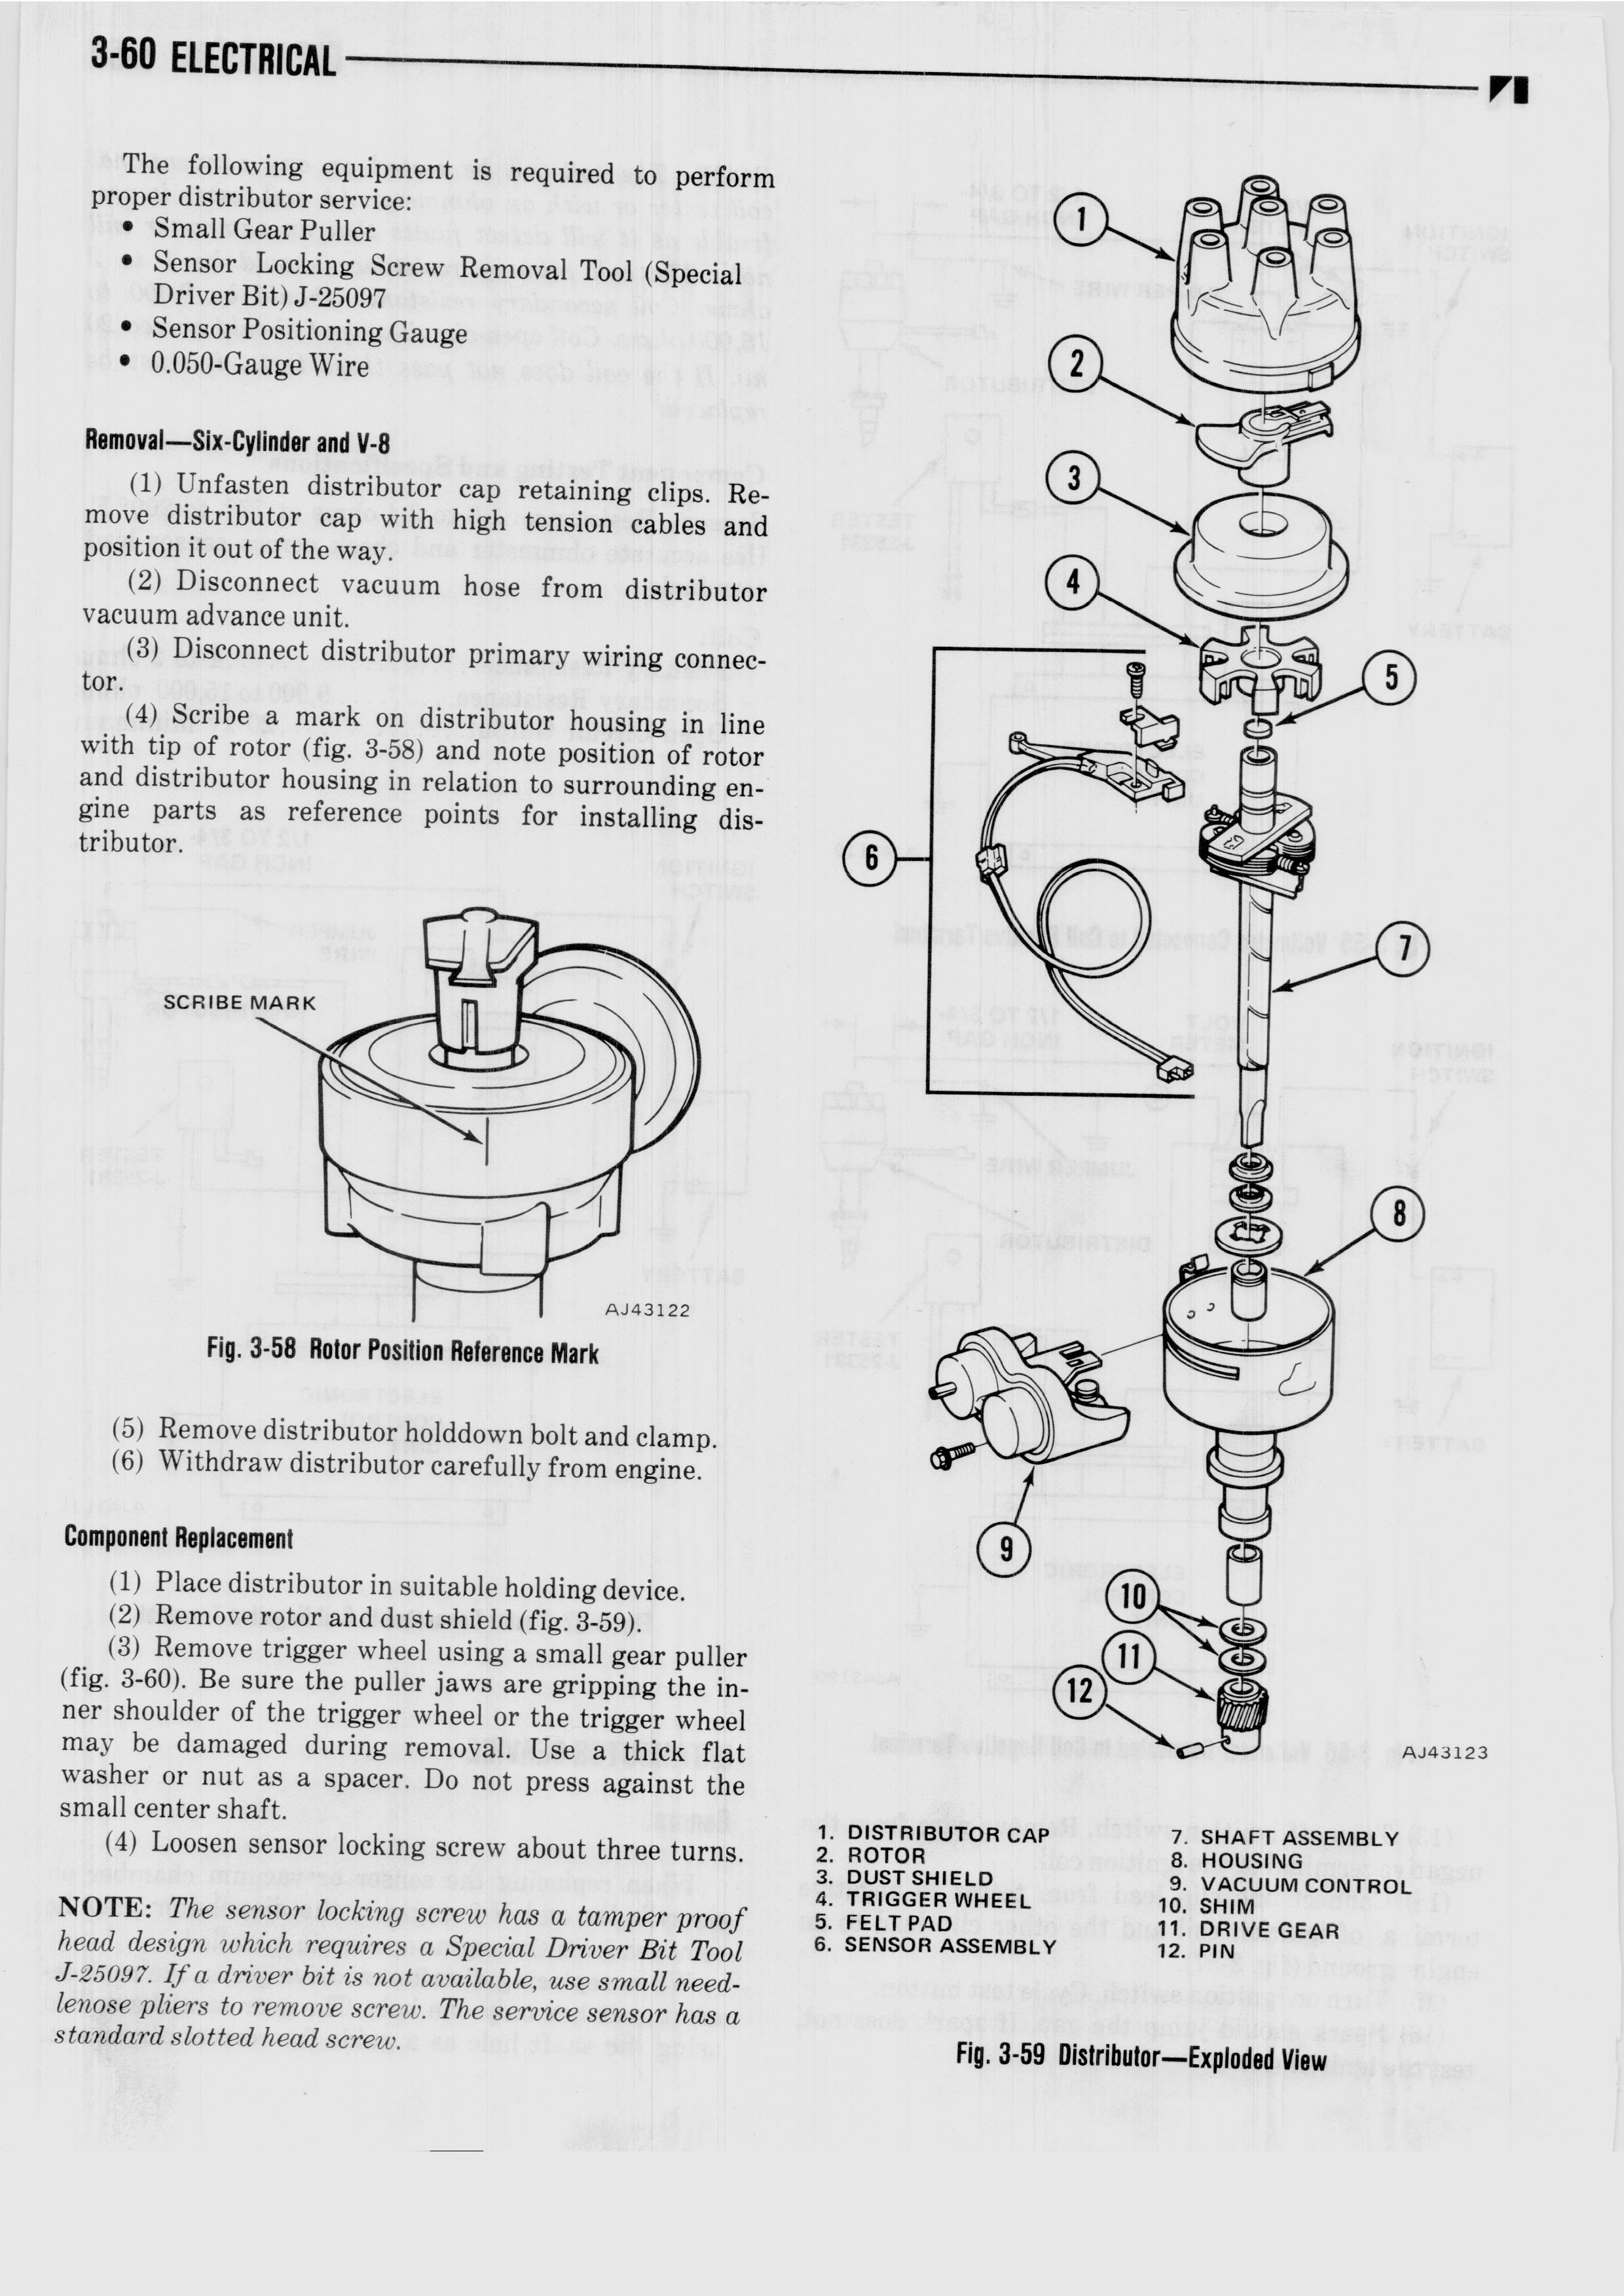 3 Electrical / 1976 AMC Technical Service Manual_Page_174.jpg